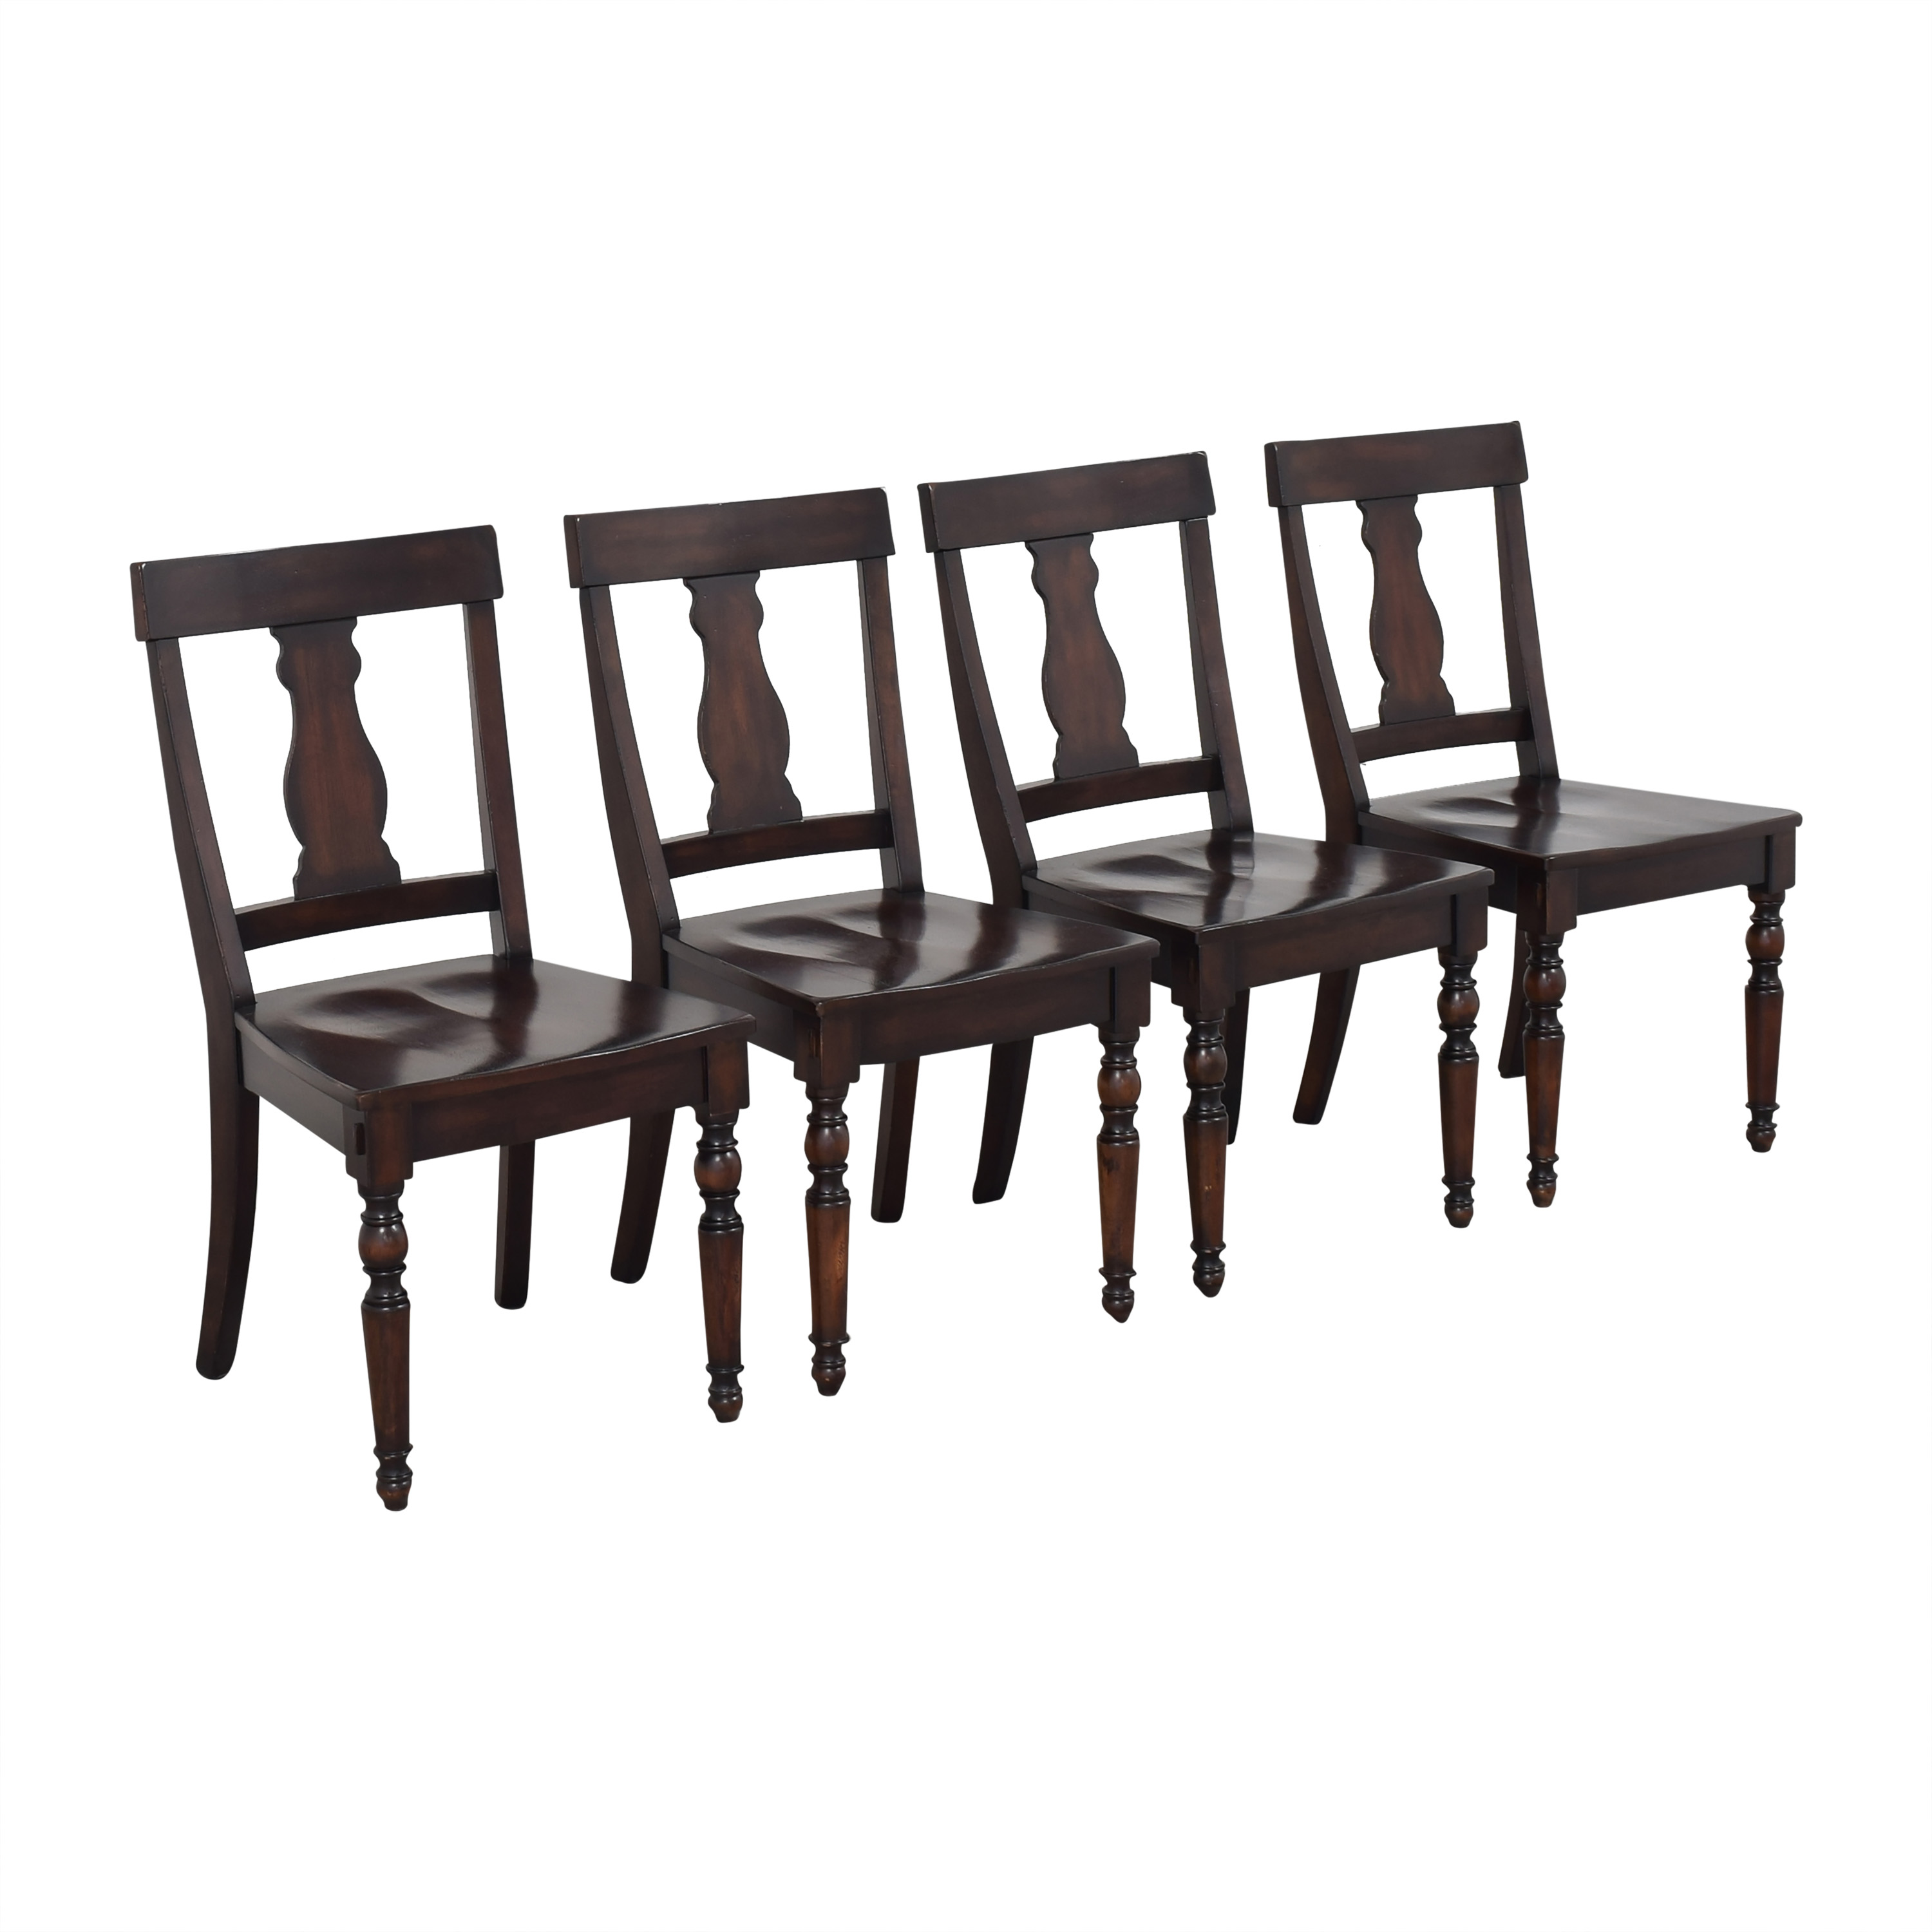 Pottery Barn Pottery Barn Dining Chairs dimensions